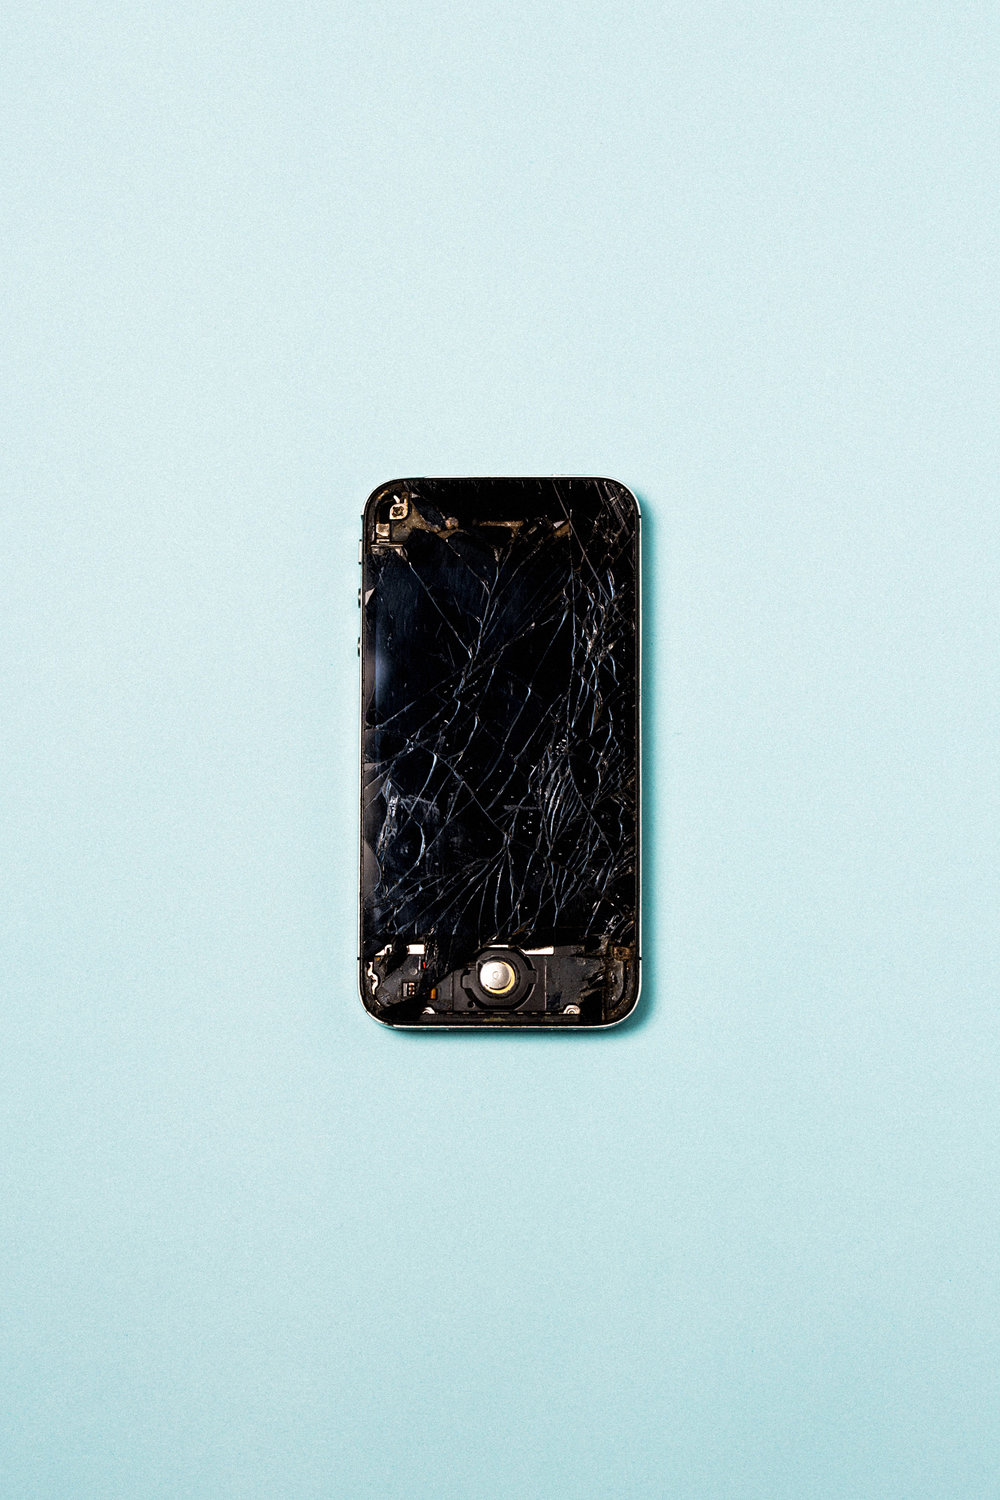 product-iphone-apple-broken-fix-screen-obsolence-leandro-crespi.jpg